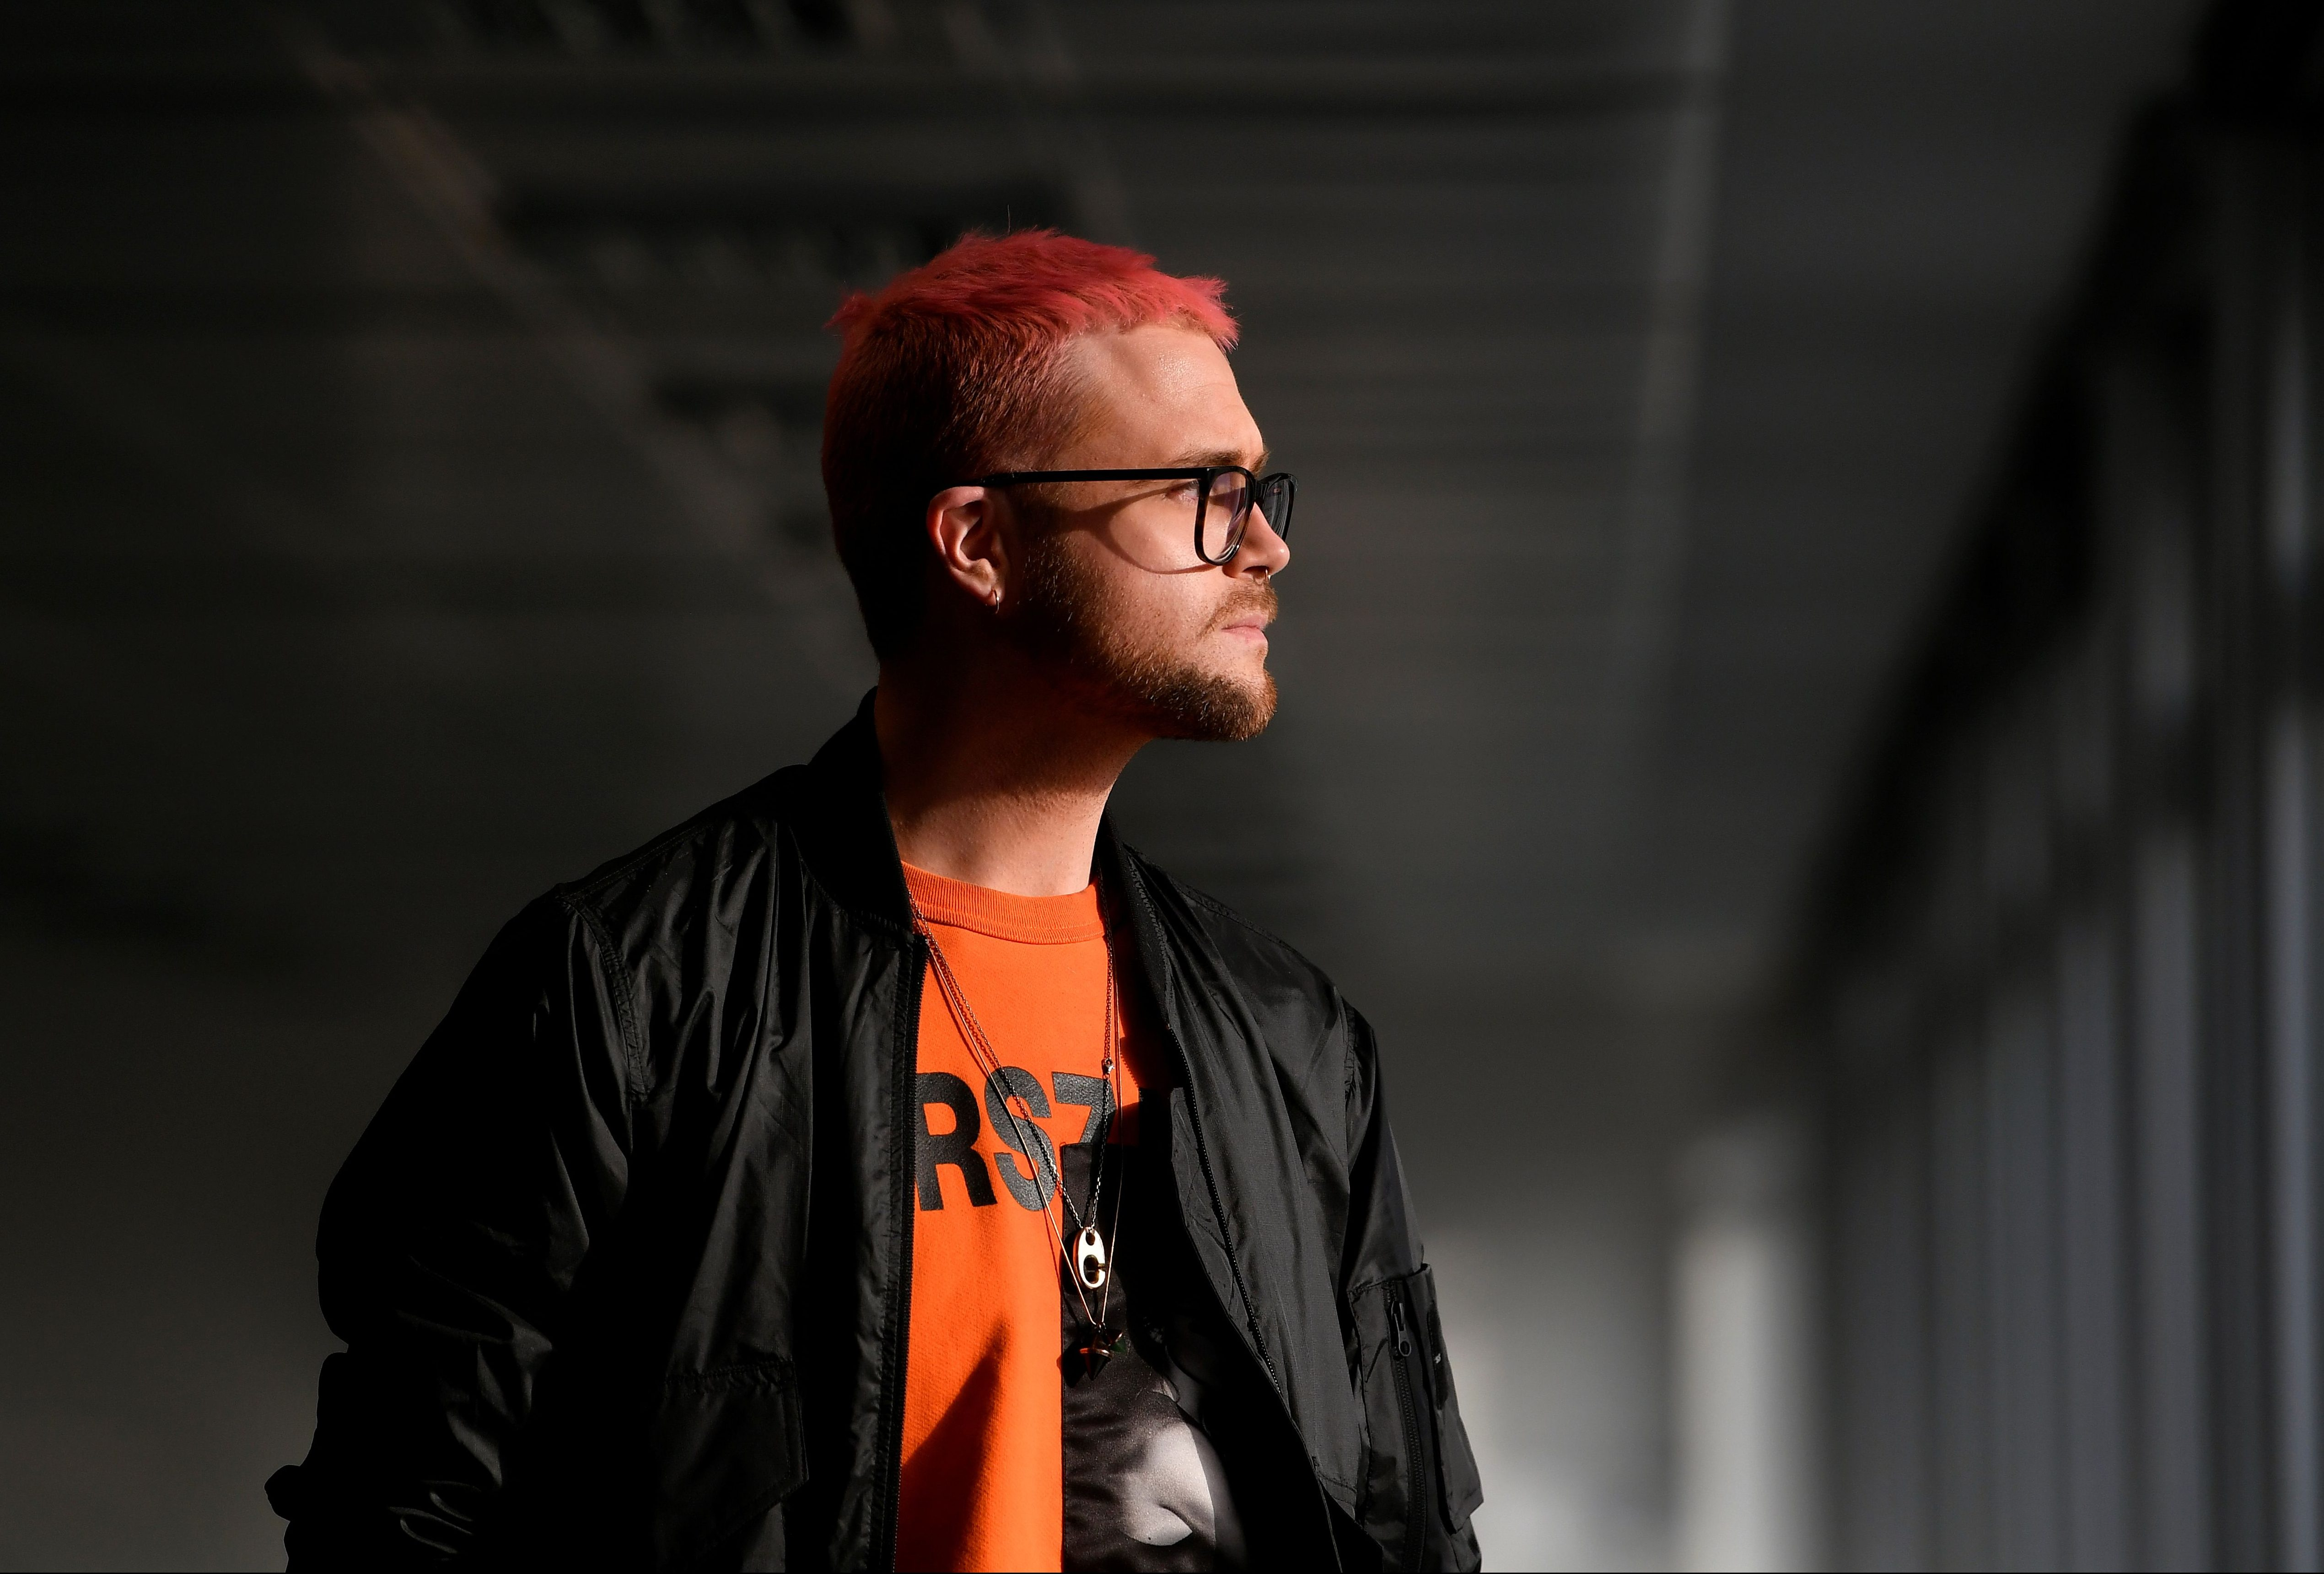 Cambridge Analytica whistleblower Christopher Wylie at a news conference in central London, Britain, March 26, 2018.